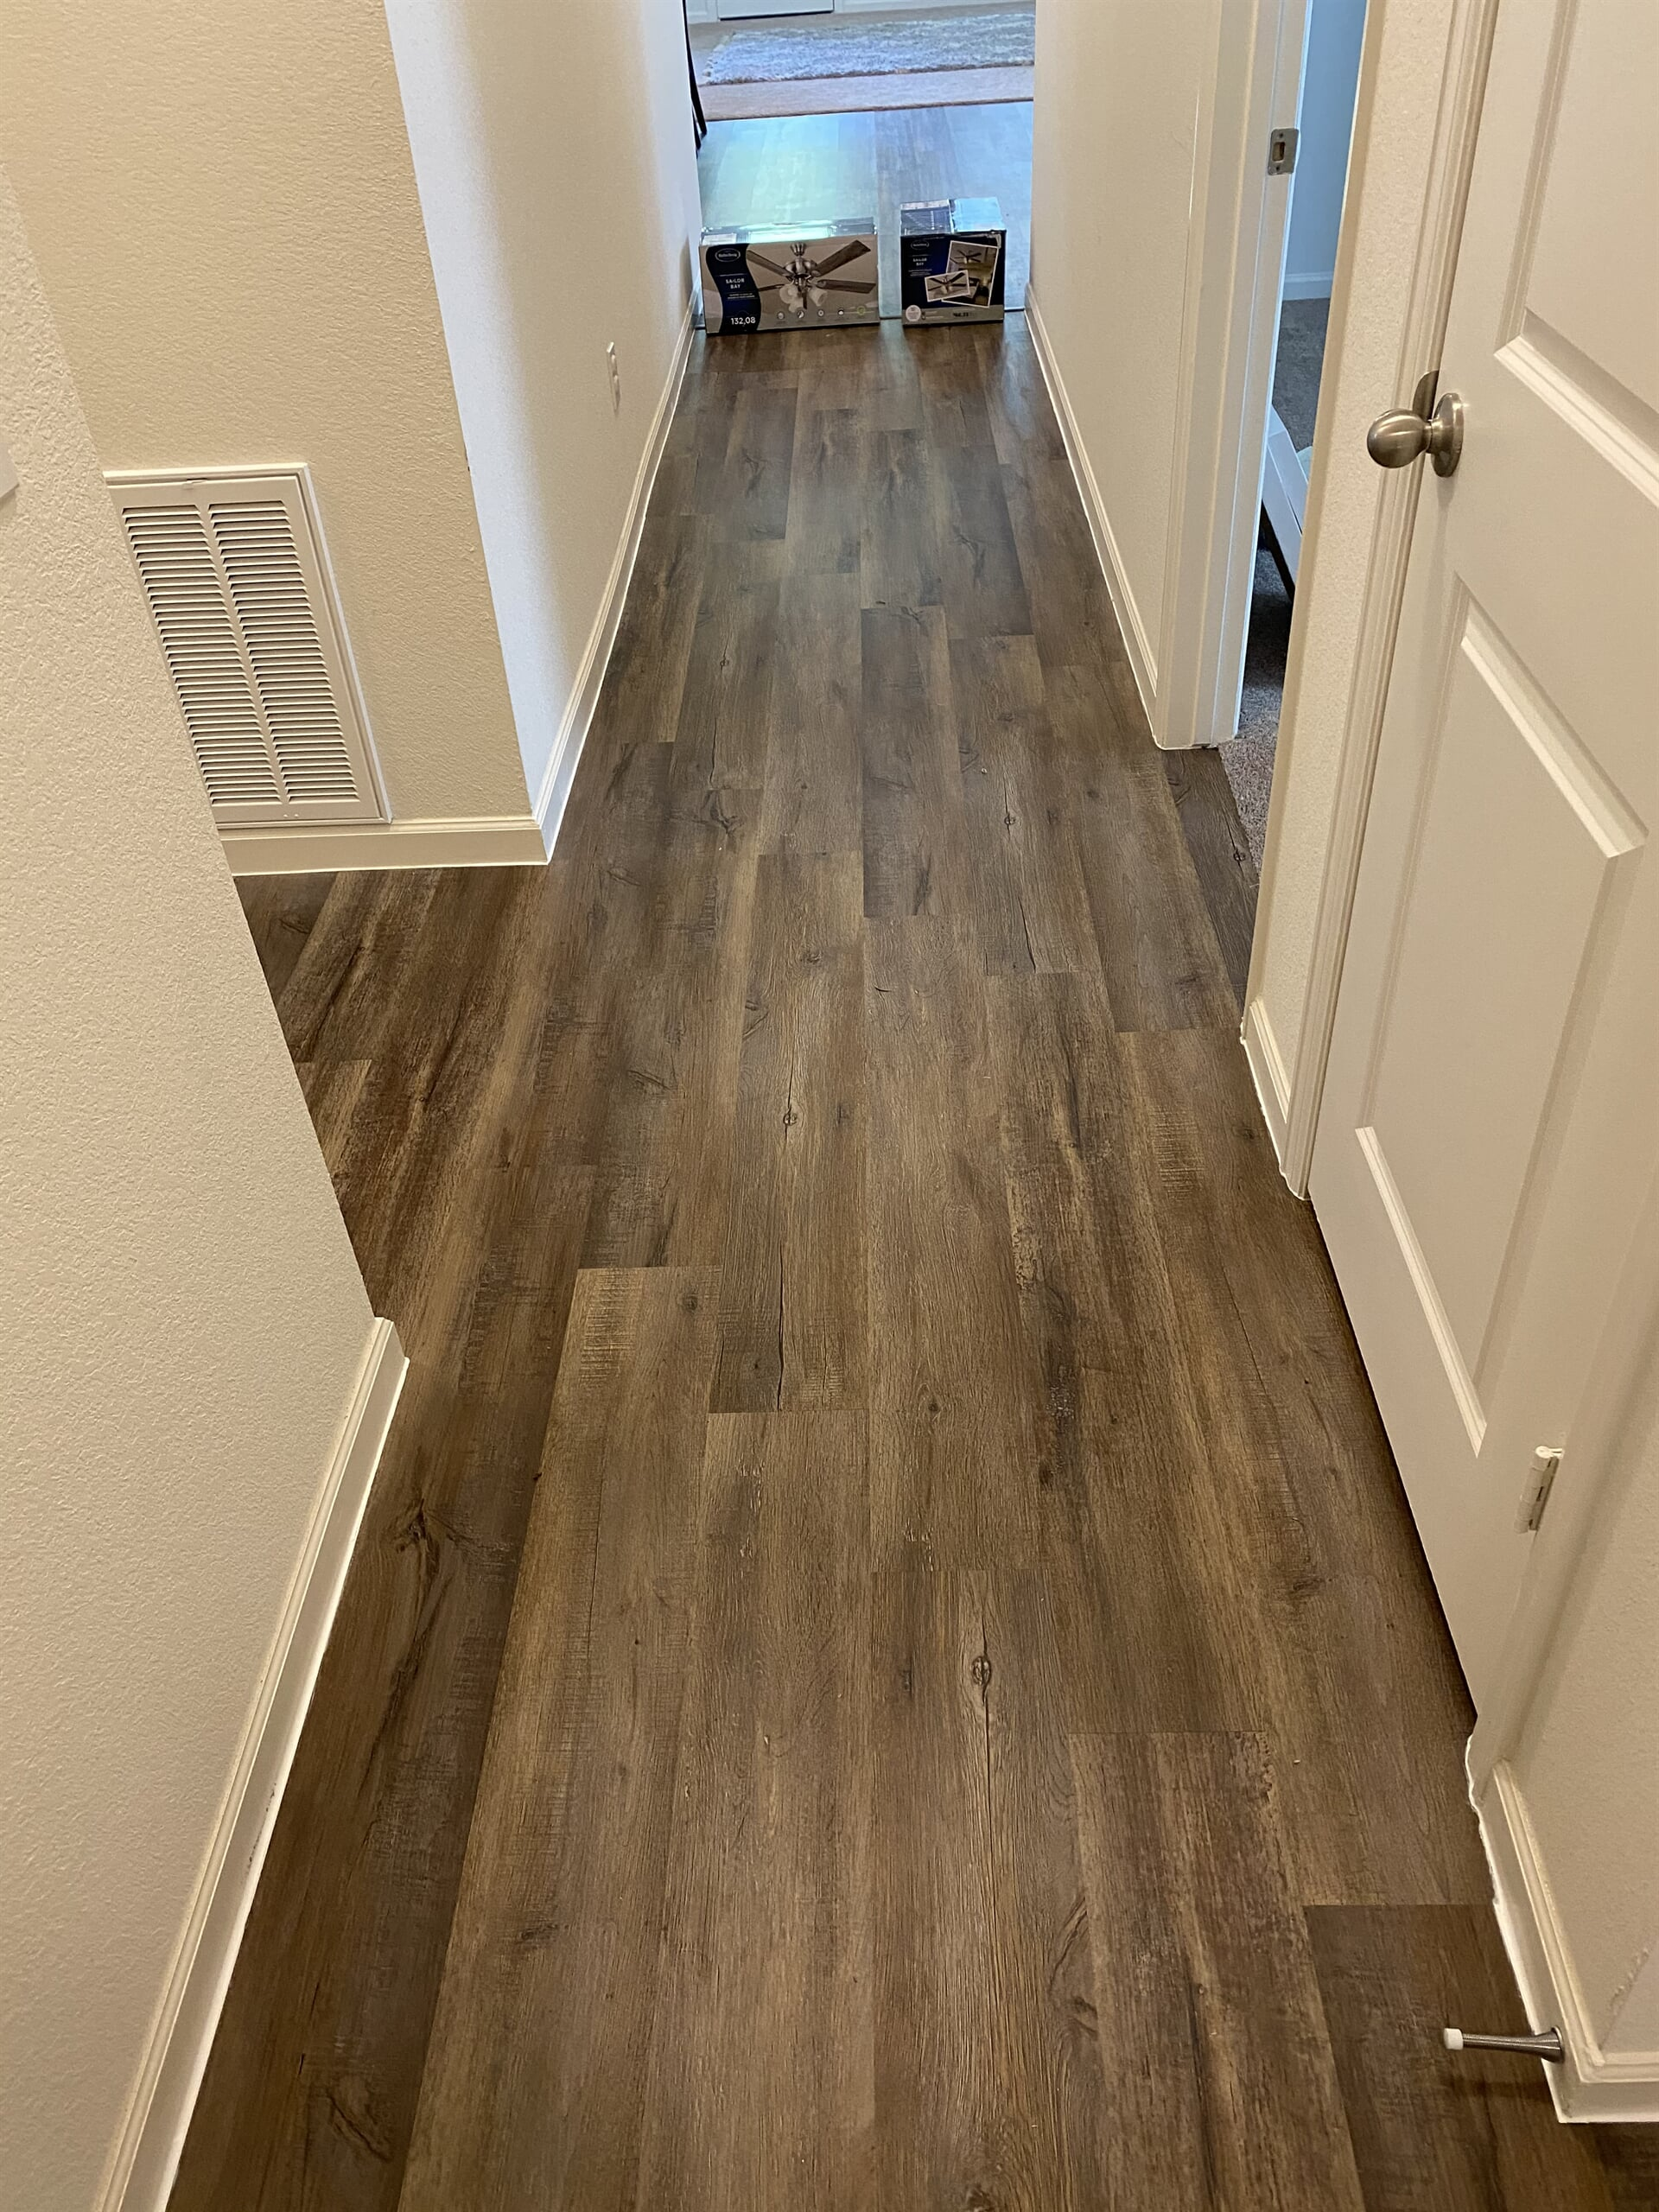 Waterproof flooring from Houston Floor Installation Services in Conroe, TX